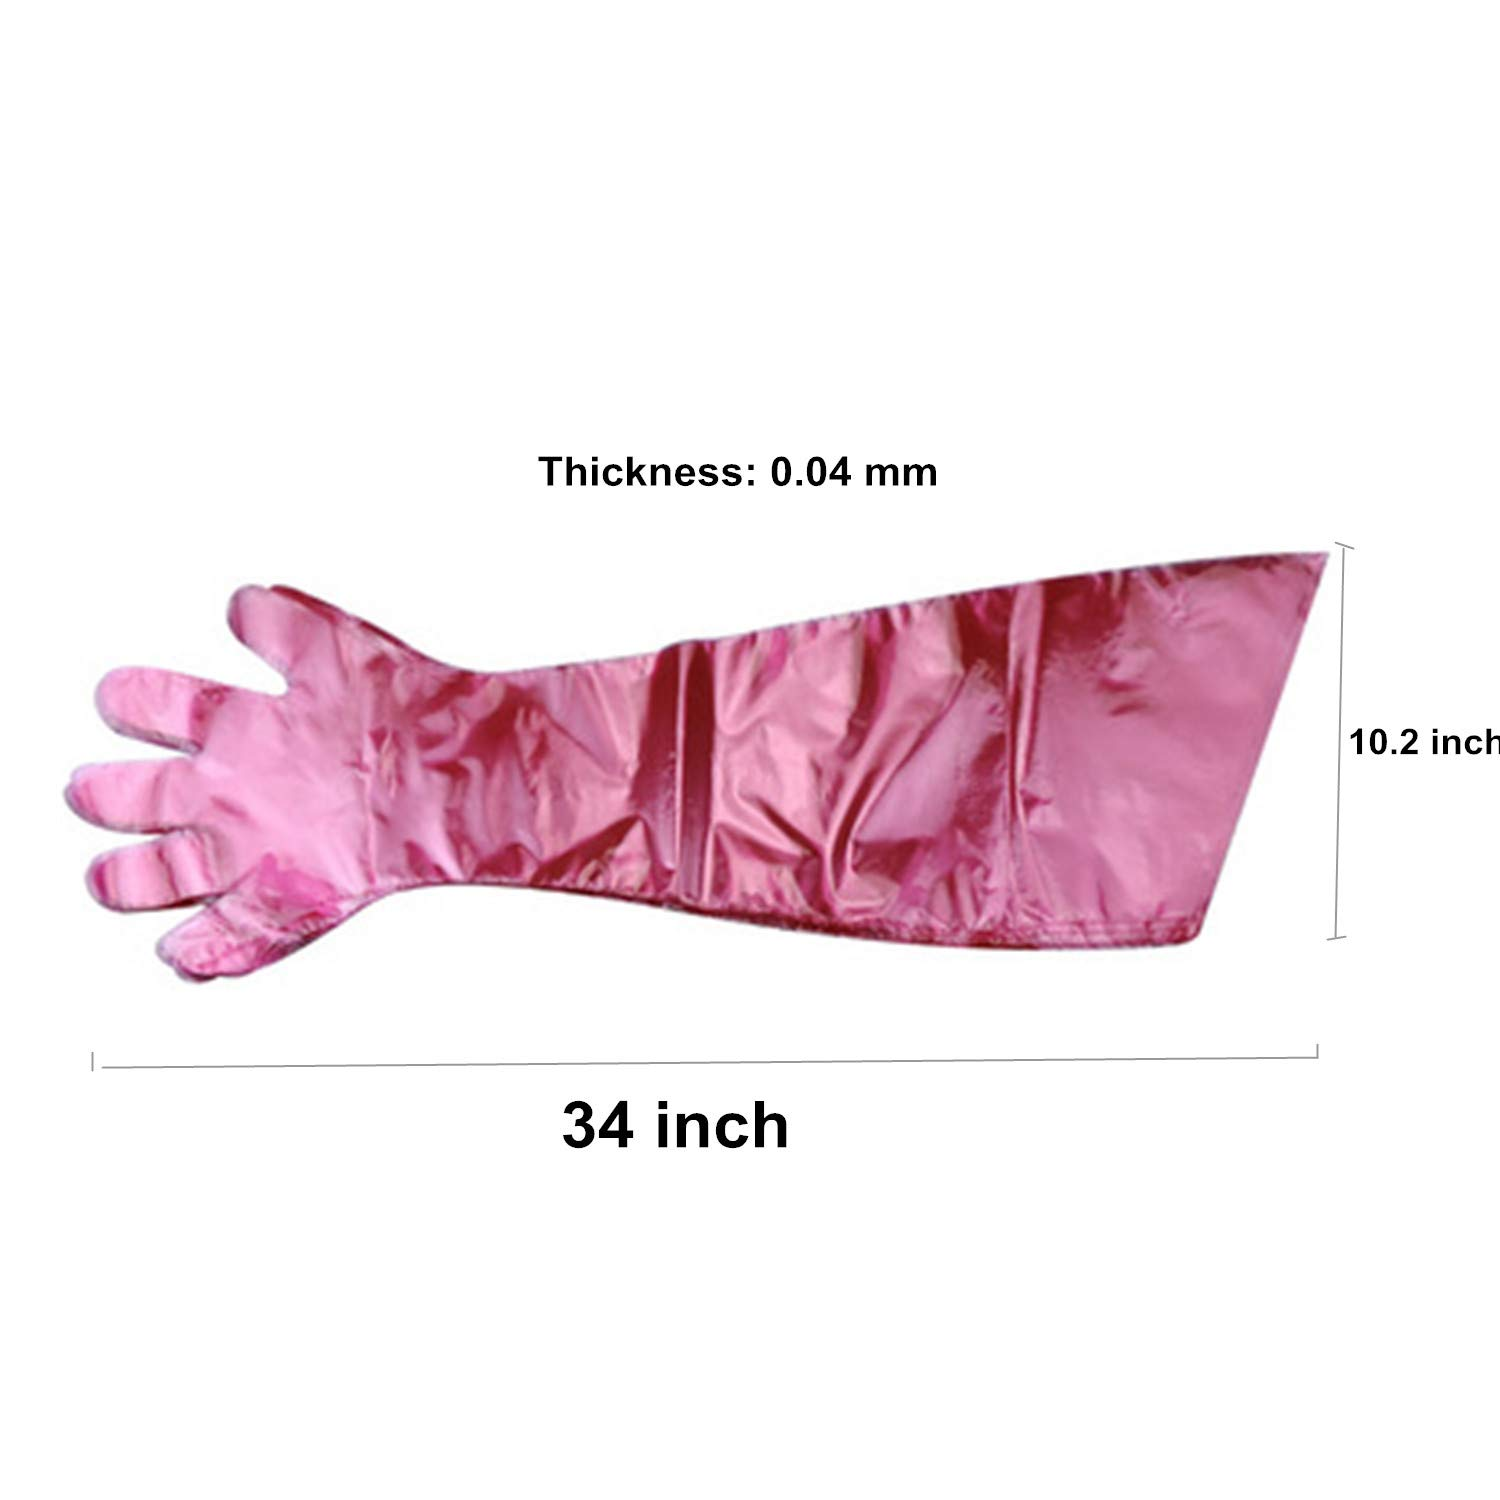 50 Pcs Disposable Soft Plastic Film Gloves Long Arm Veterinary Examination Artificial Insemination Glove by PPX by PPX (Image #2)